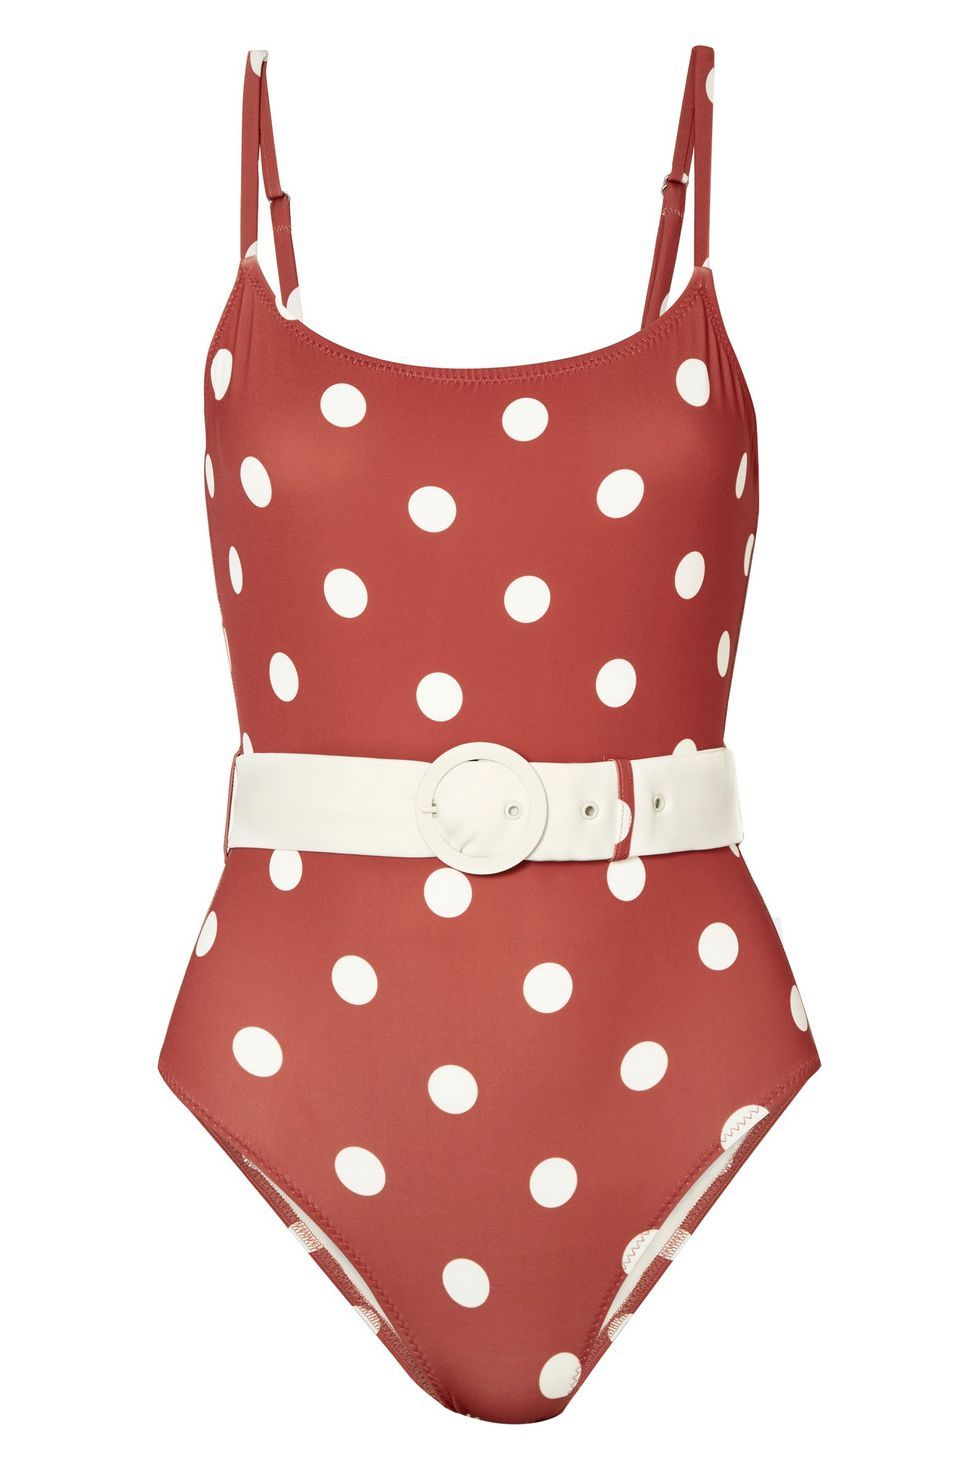 Best Polka Dot One-Piece The Nina Polka Dot Swimsuit Solid & Striped $170.00 SHOP IT Take the guesswork out of which accessories to pair with your swimsuit. This option from Solid & Striped comes with a white belt to match the polka dots.